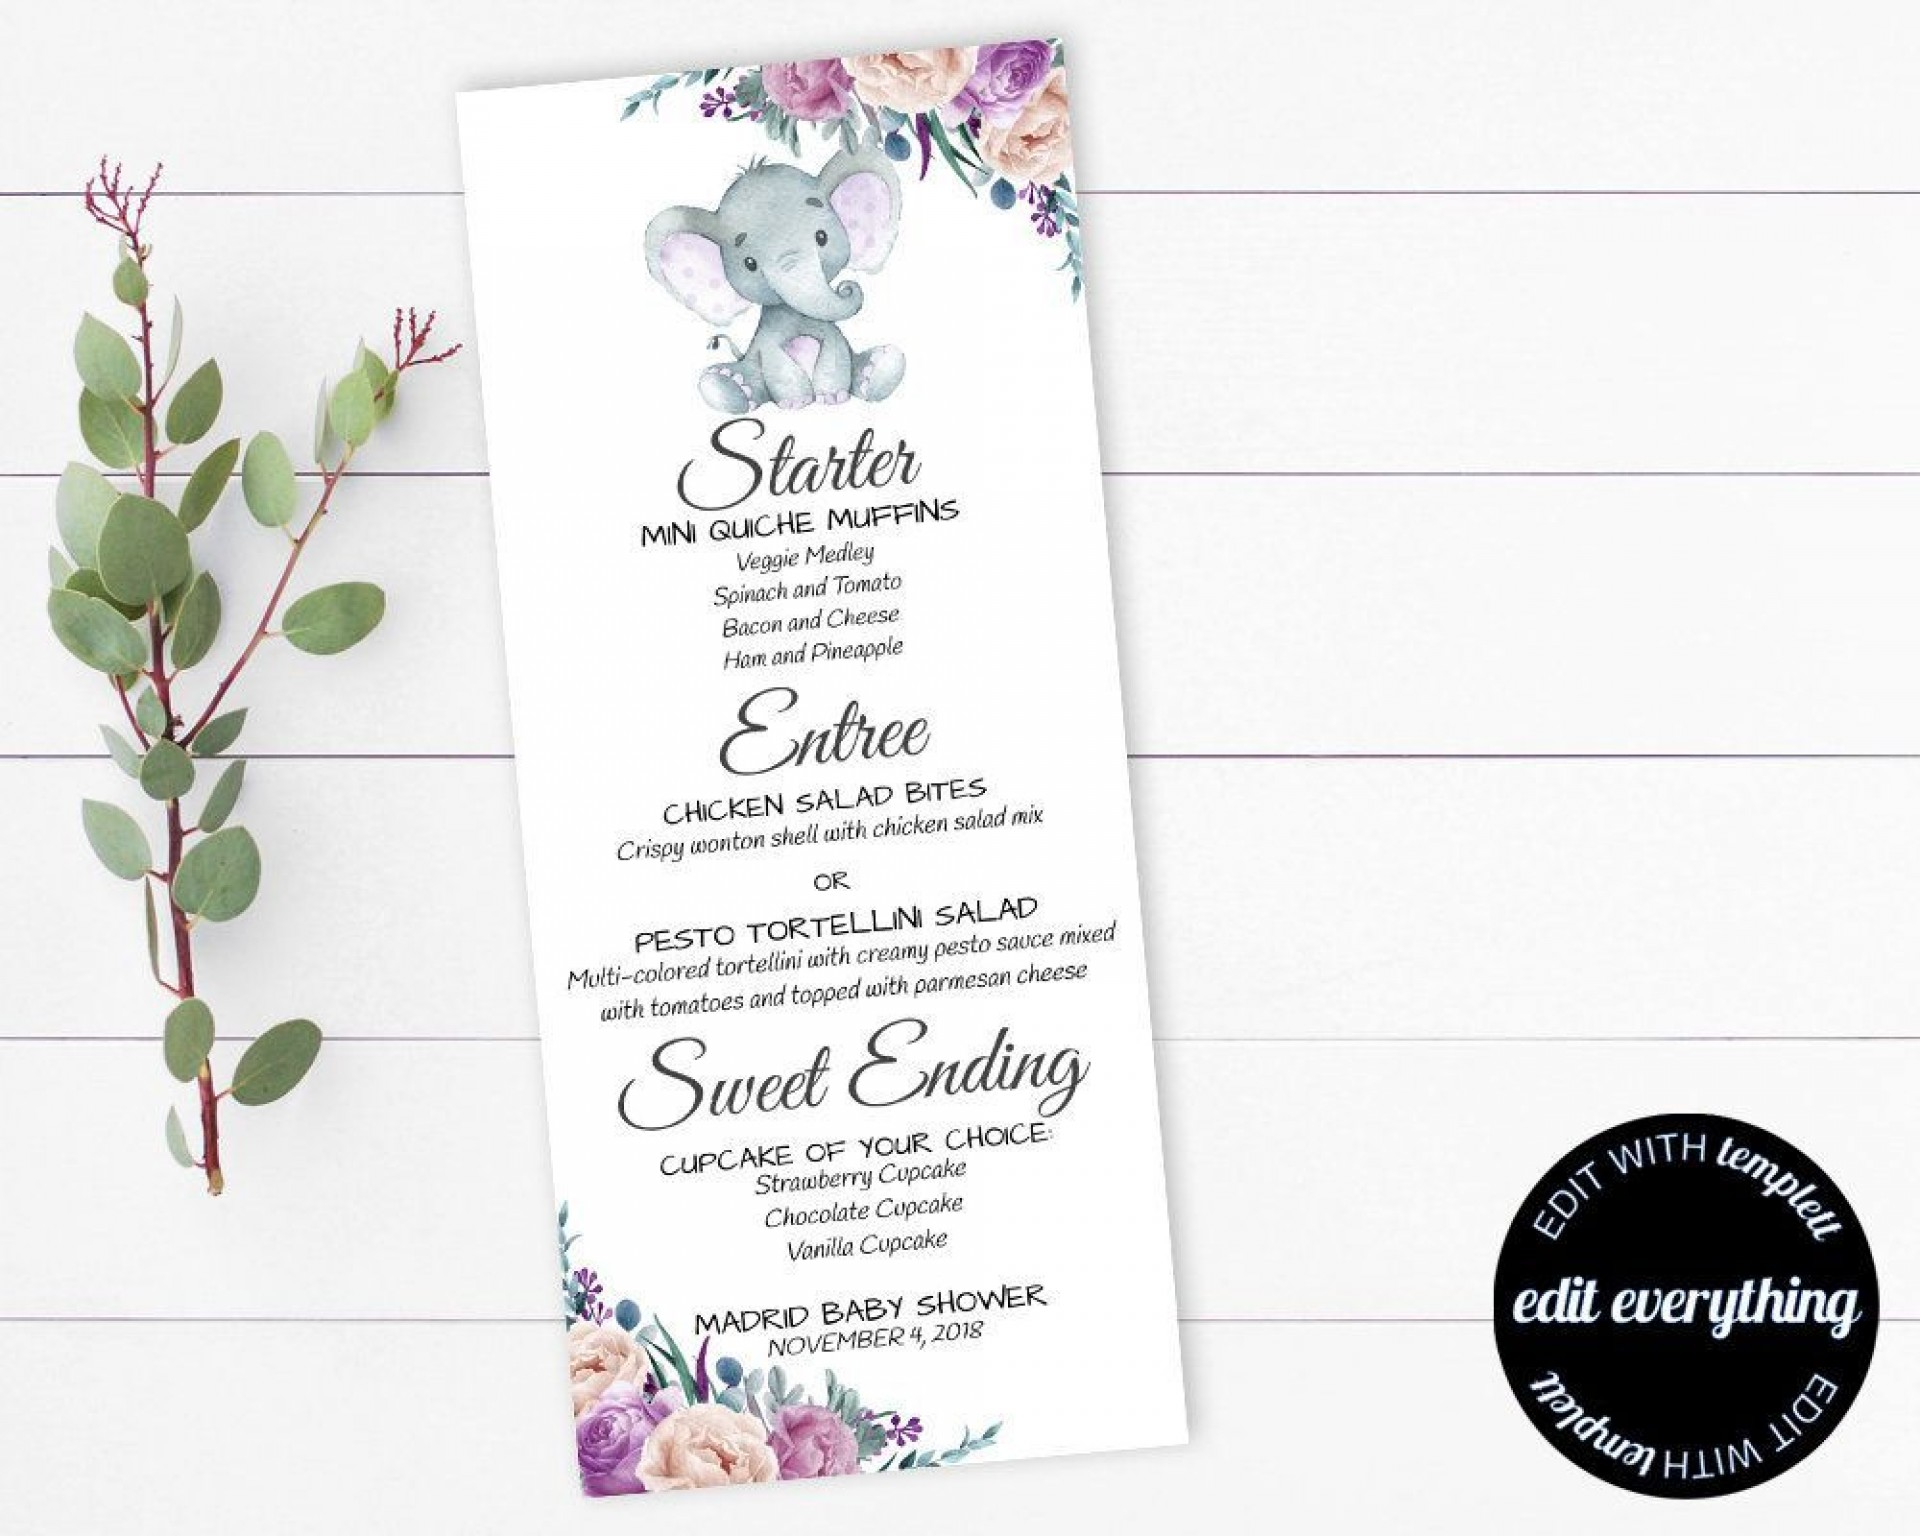 000 Remarkable Baby Shower Menu Template High Def  Templates Lunch Printable Downloadable1920